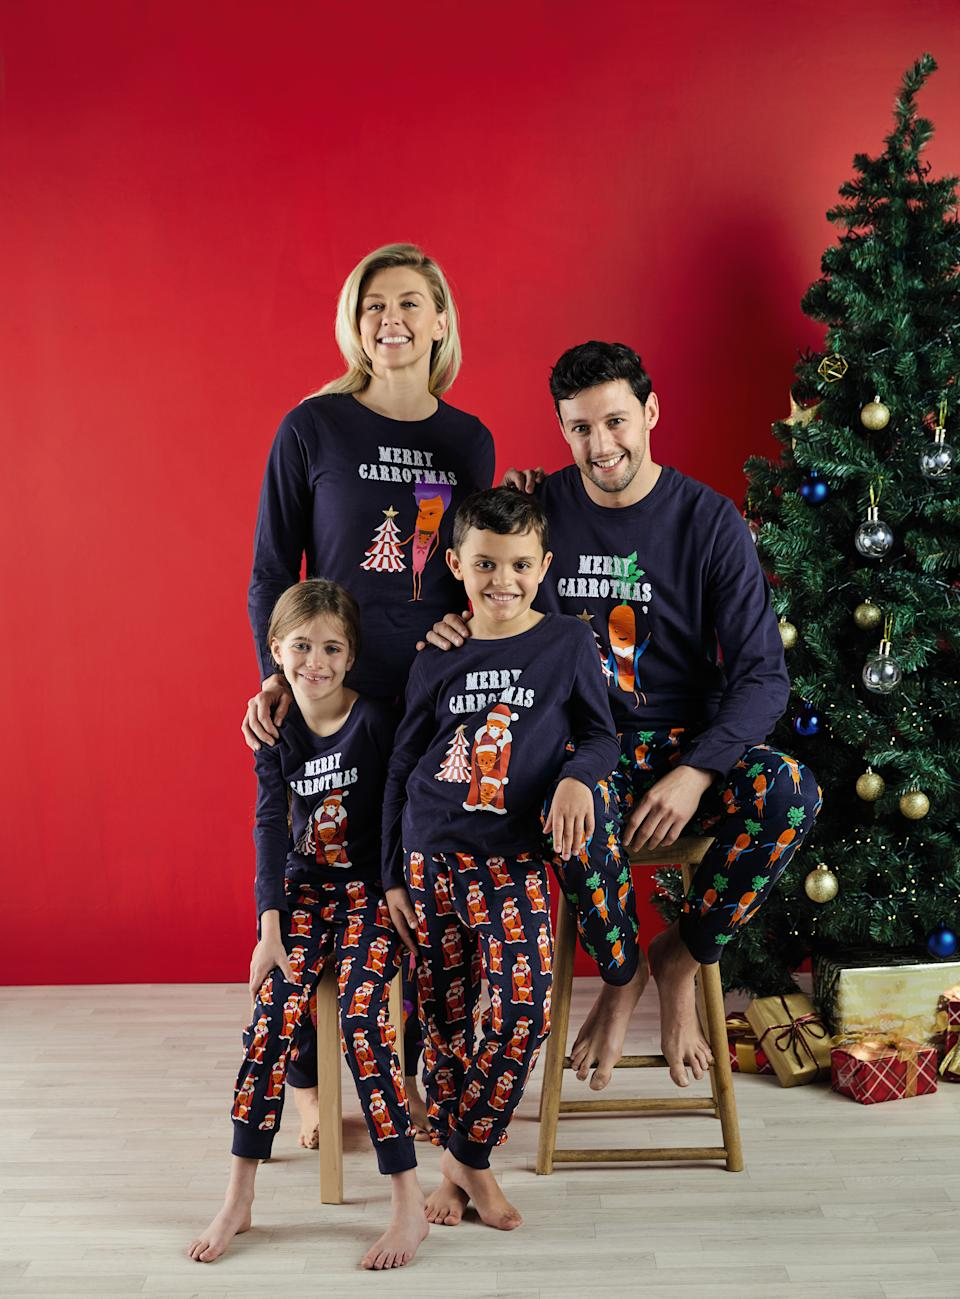 There's even pyjamas available for the whole family. [Photo: Aldi]